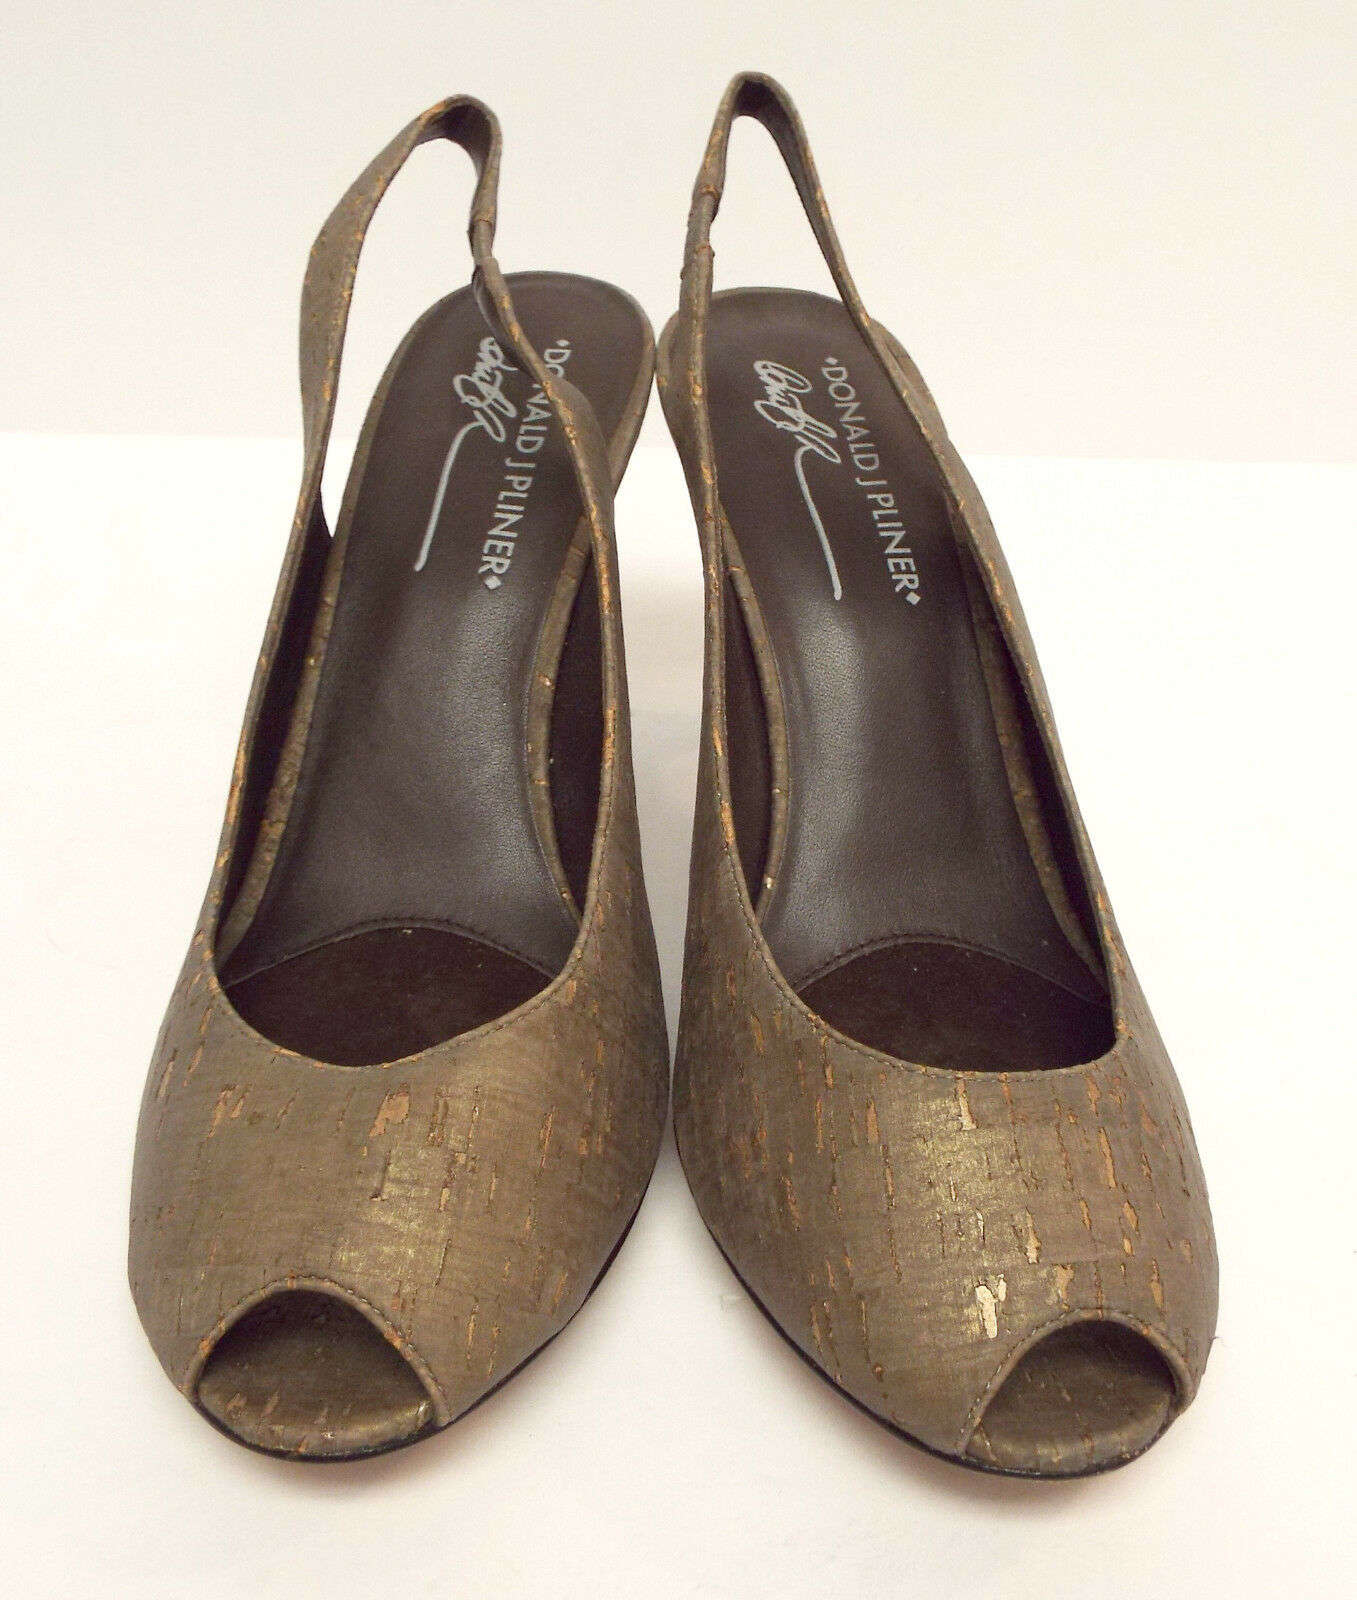 New DONALD PLINER Size Size Size 8 PAPINAWEWE Cork Metallic Heels Pumps shoes 19c43f